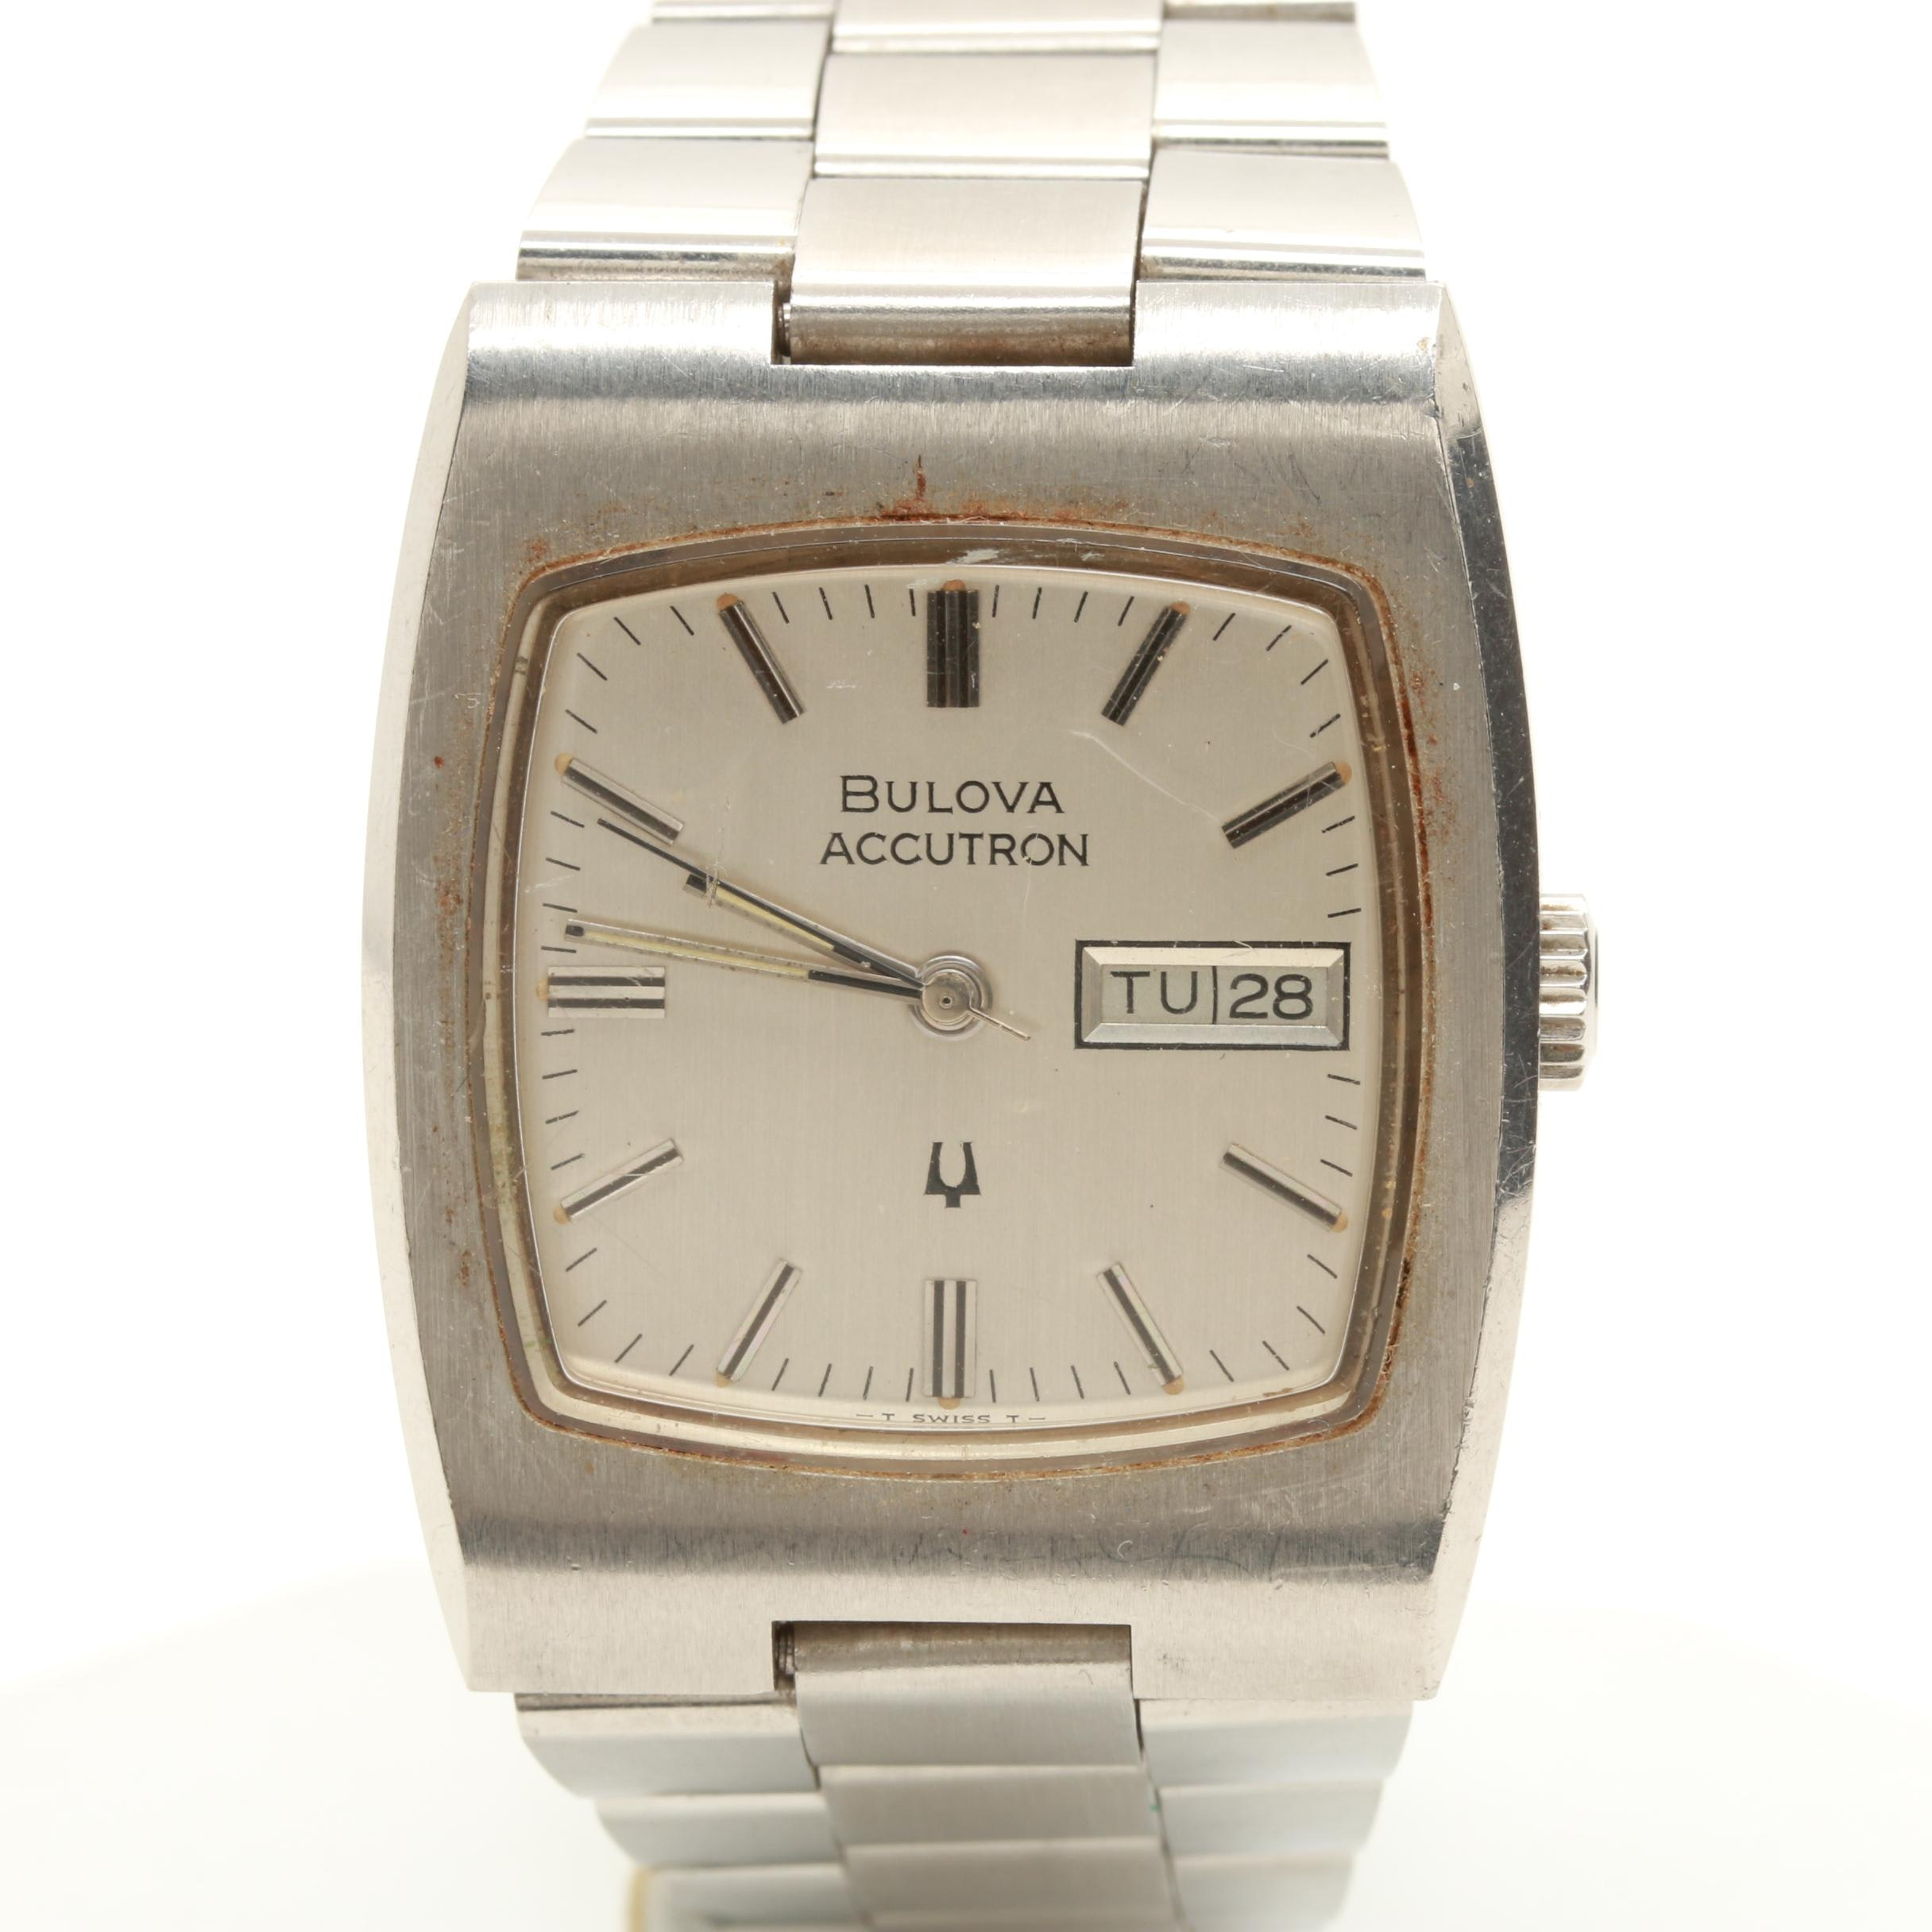 Bulova Accutron Wristwatch